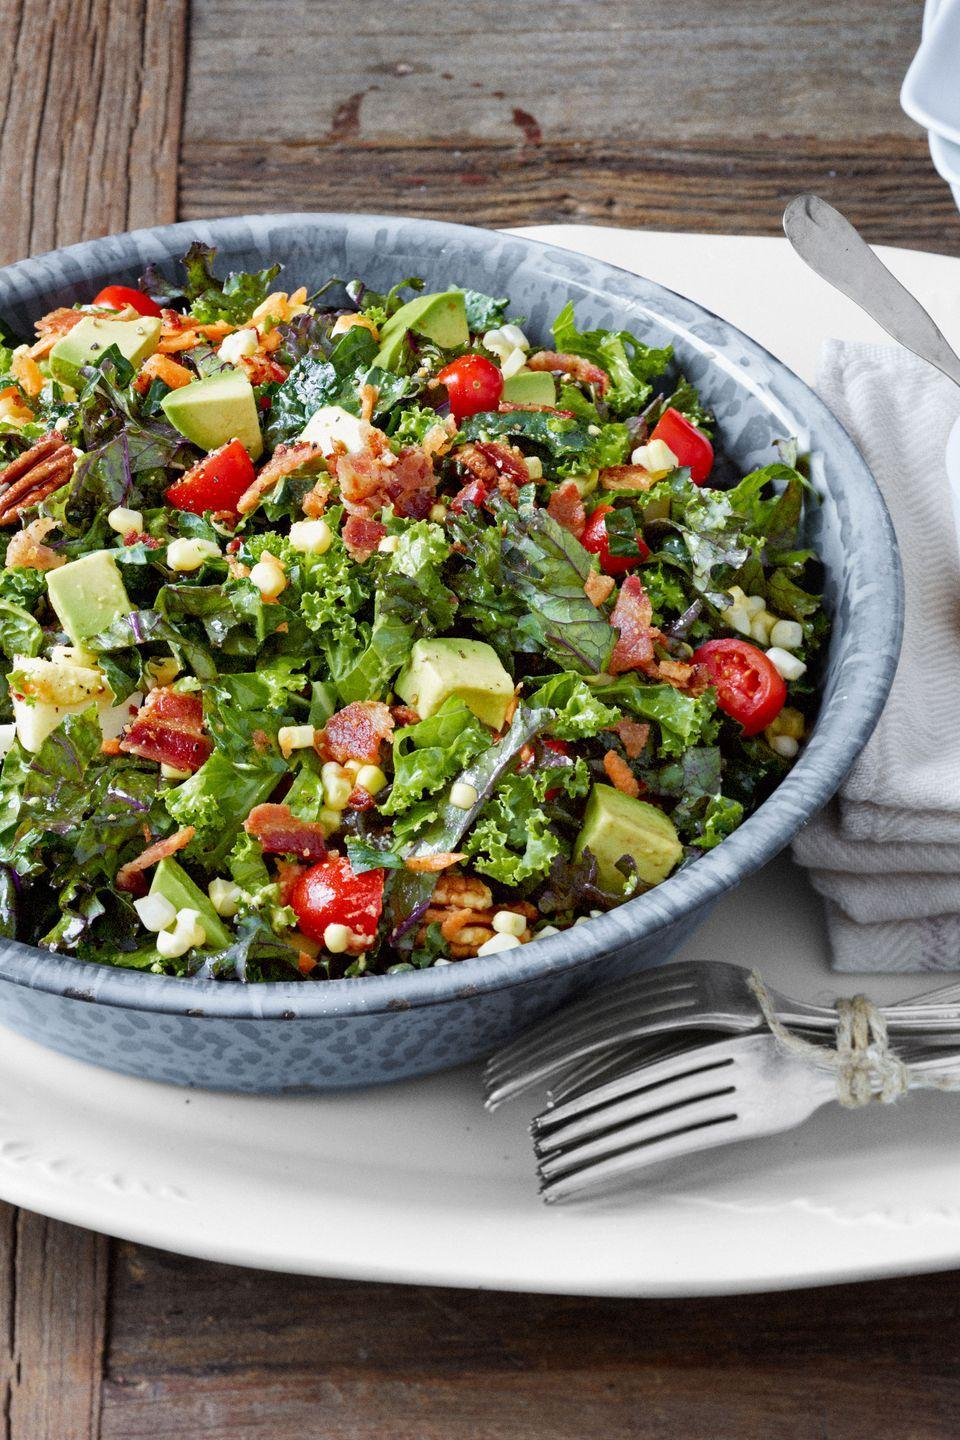 "<p>Tomatoes, pecans, bacon, and more top a hearty salad of kale and collards, which is meant to be served at room temperature.</p><p><a href=""https://www.countryliving.com/food-drinks/recipes/a4198/chopped-collard-kale-salad-lemon-garlic-dressing-recipe-clv0813/"" rel=""nofollow noopener"" target=""_blank"" data-ylk=""slk:Get the recipe."" class=""link rapid-noclick-resp""><strong>Get the recipe.</strong></a></p>"